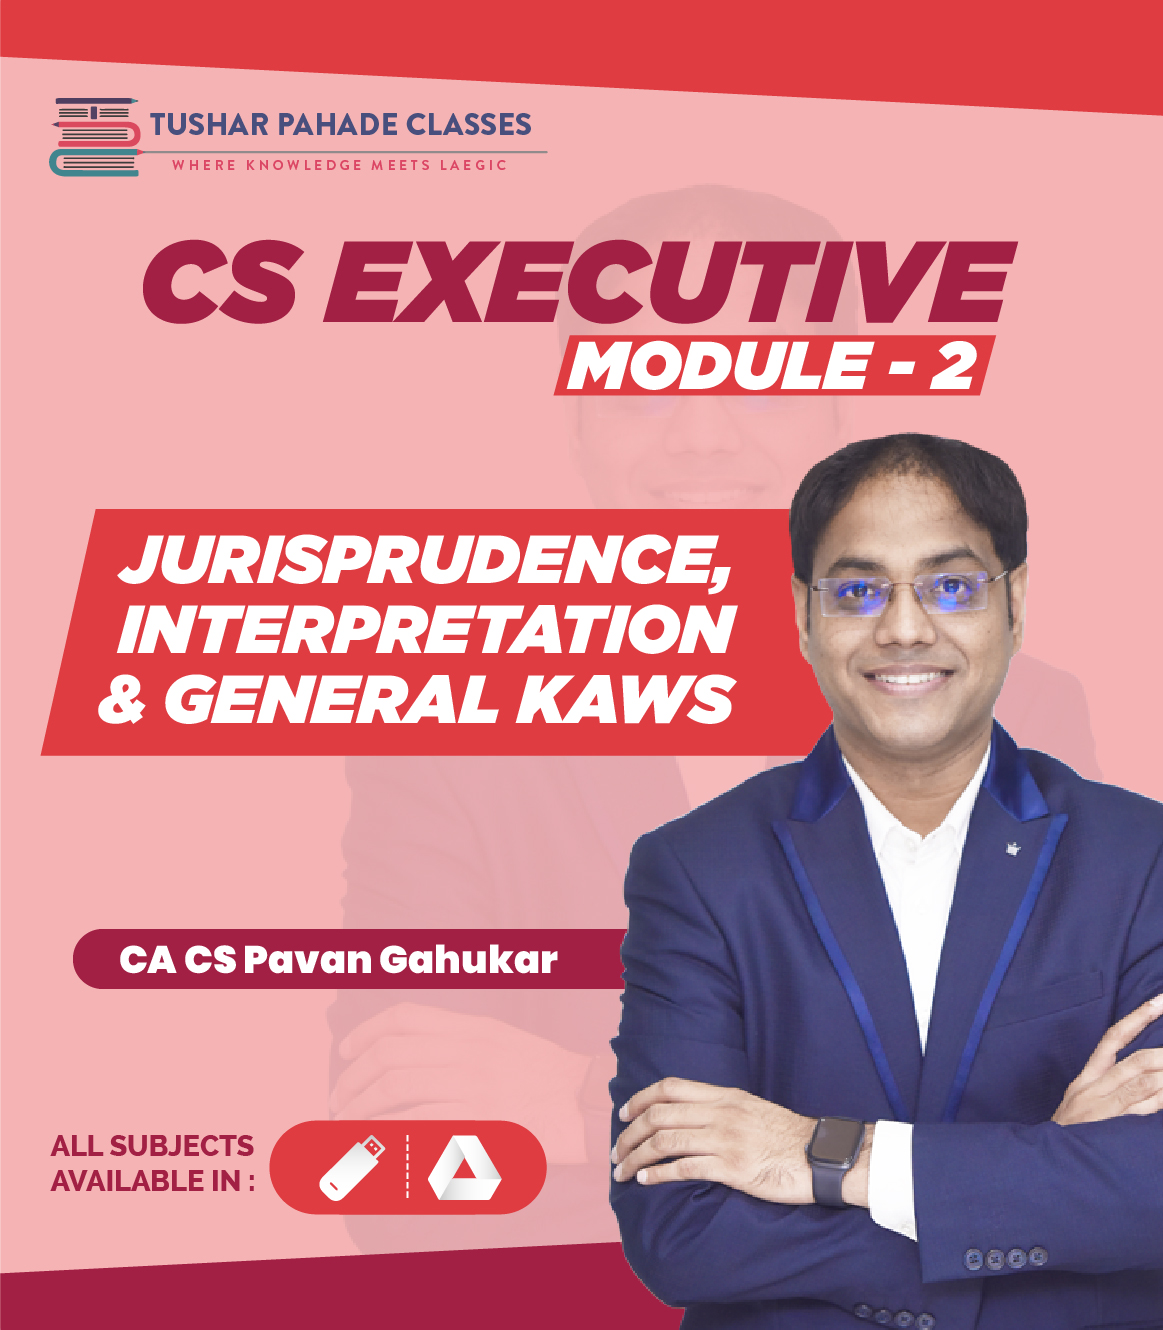 CS Executive video lectures by CS CA Pavan Gahukar JIGL